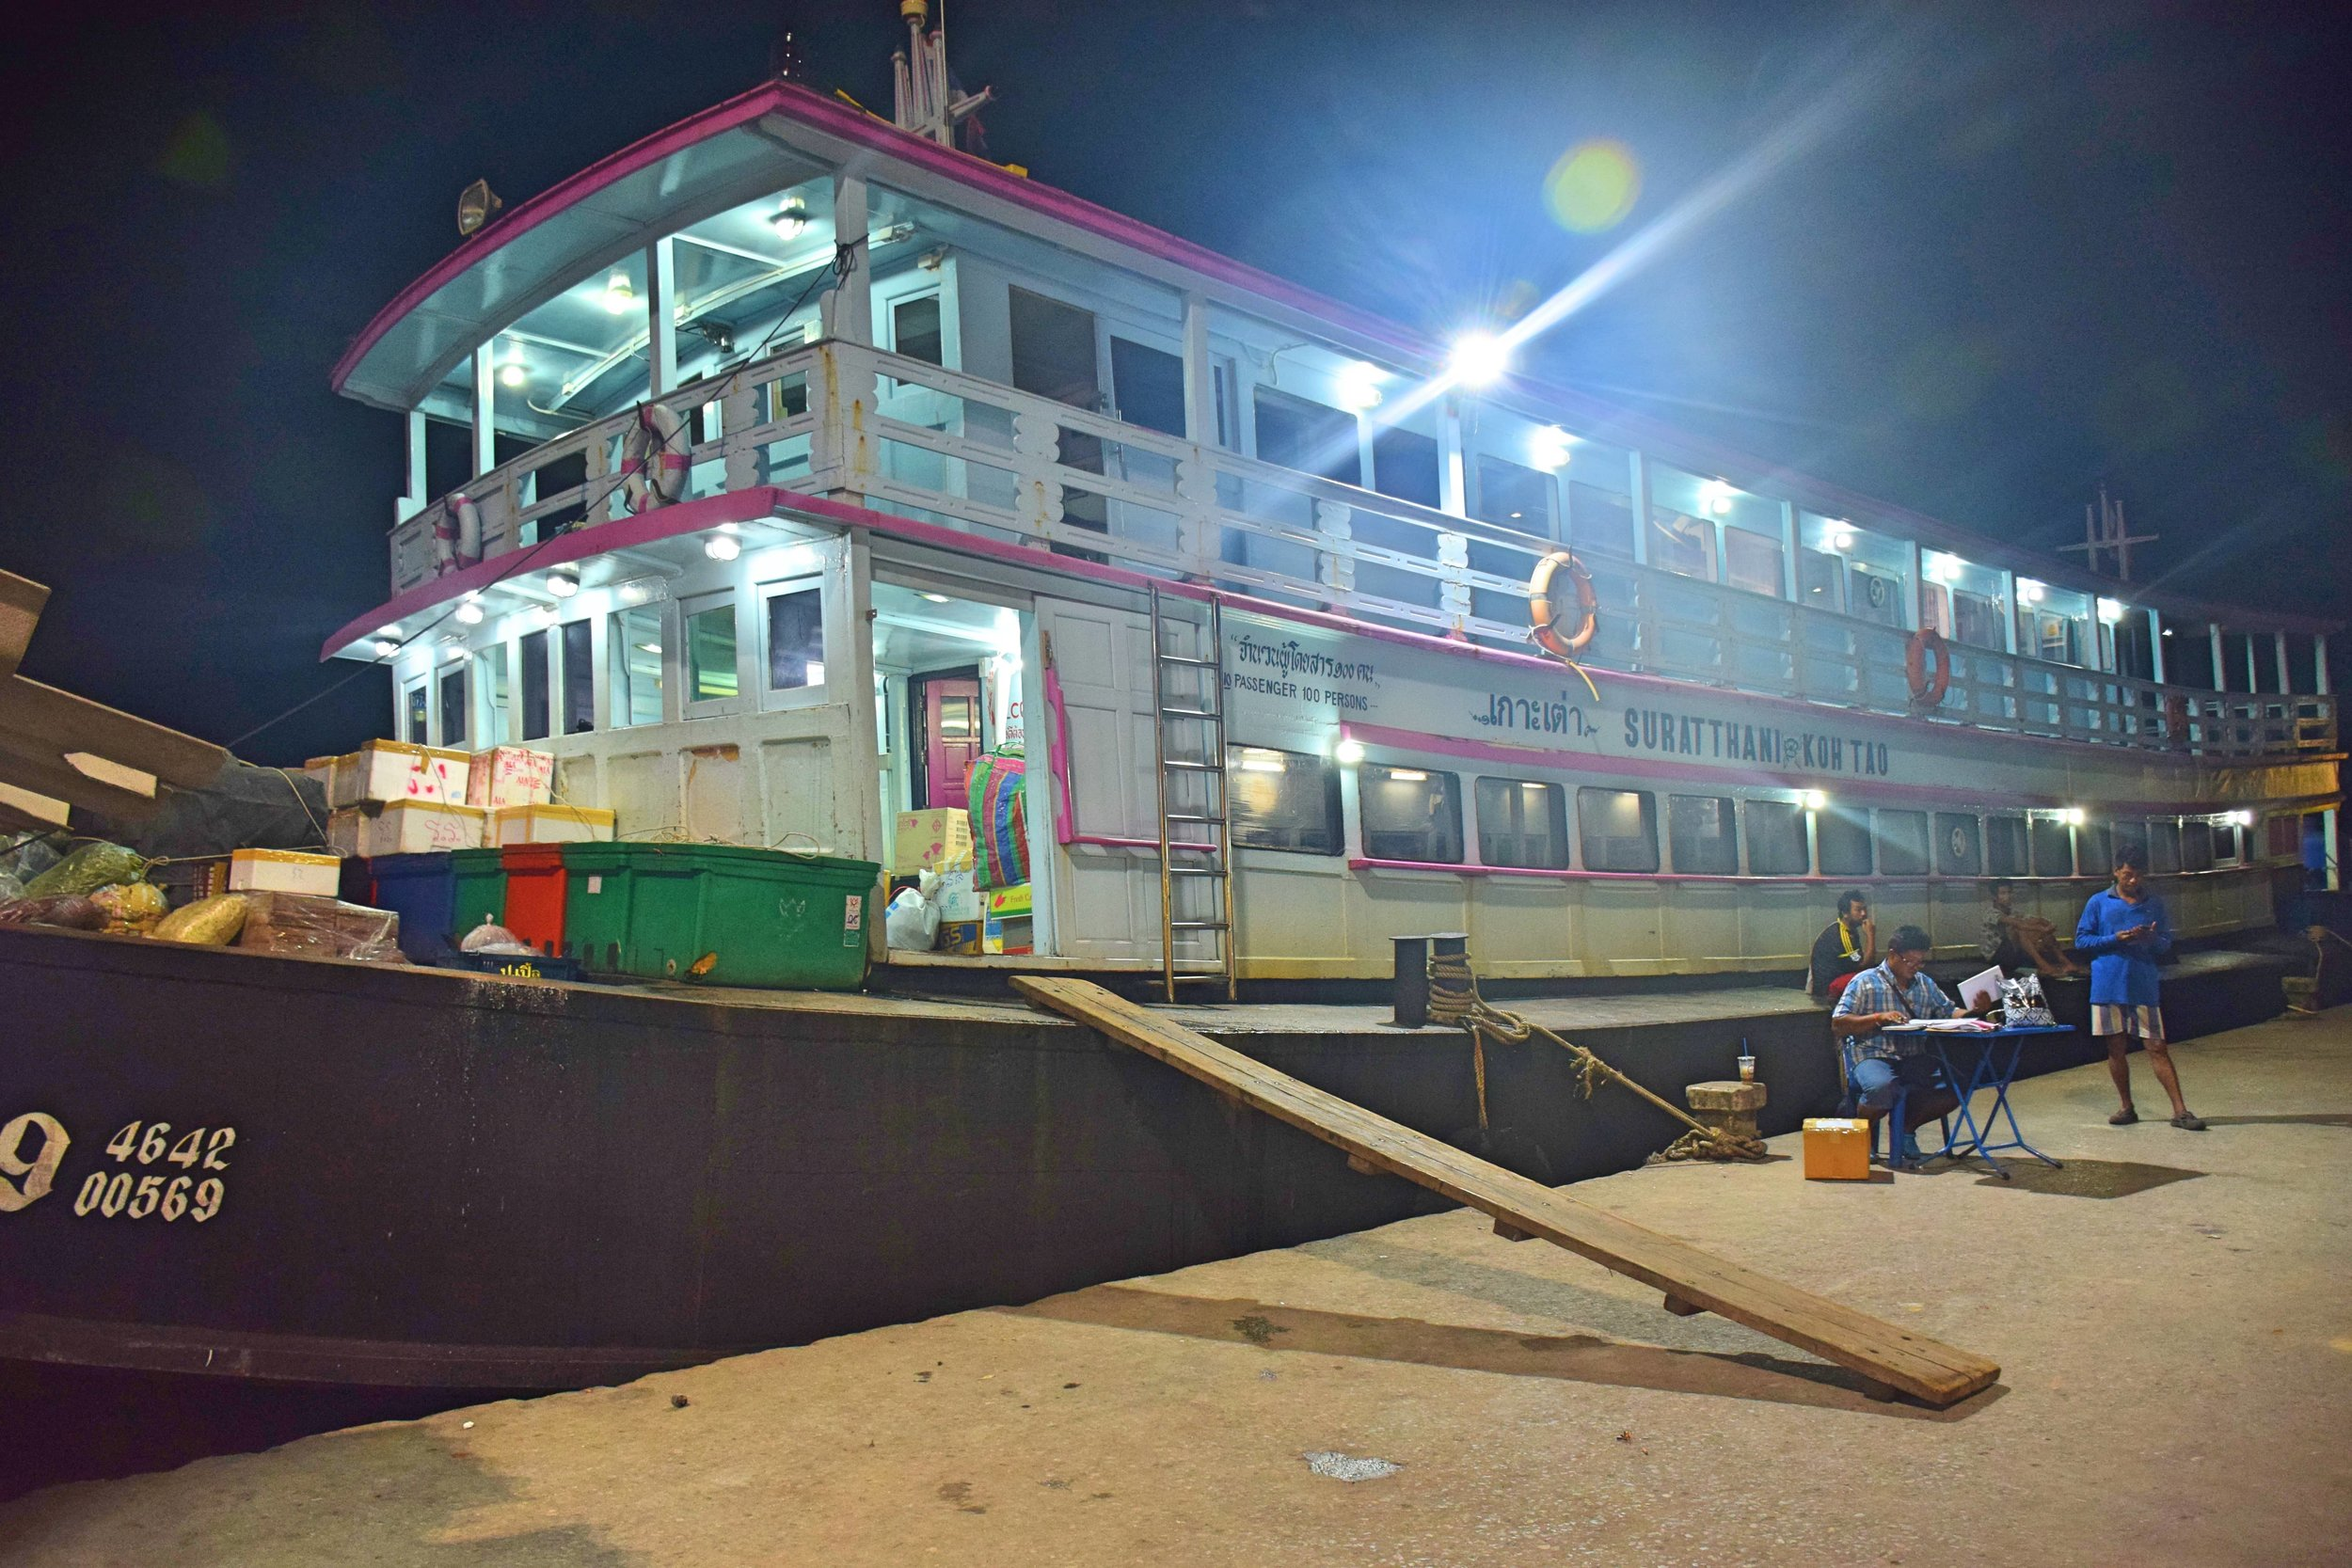 Overnight boat from Suratthani to Koh Tao